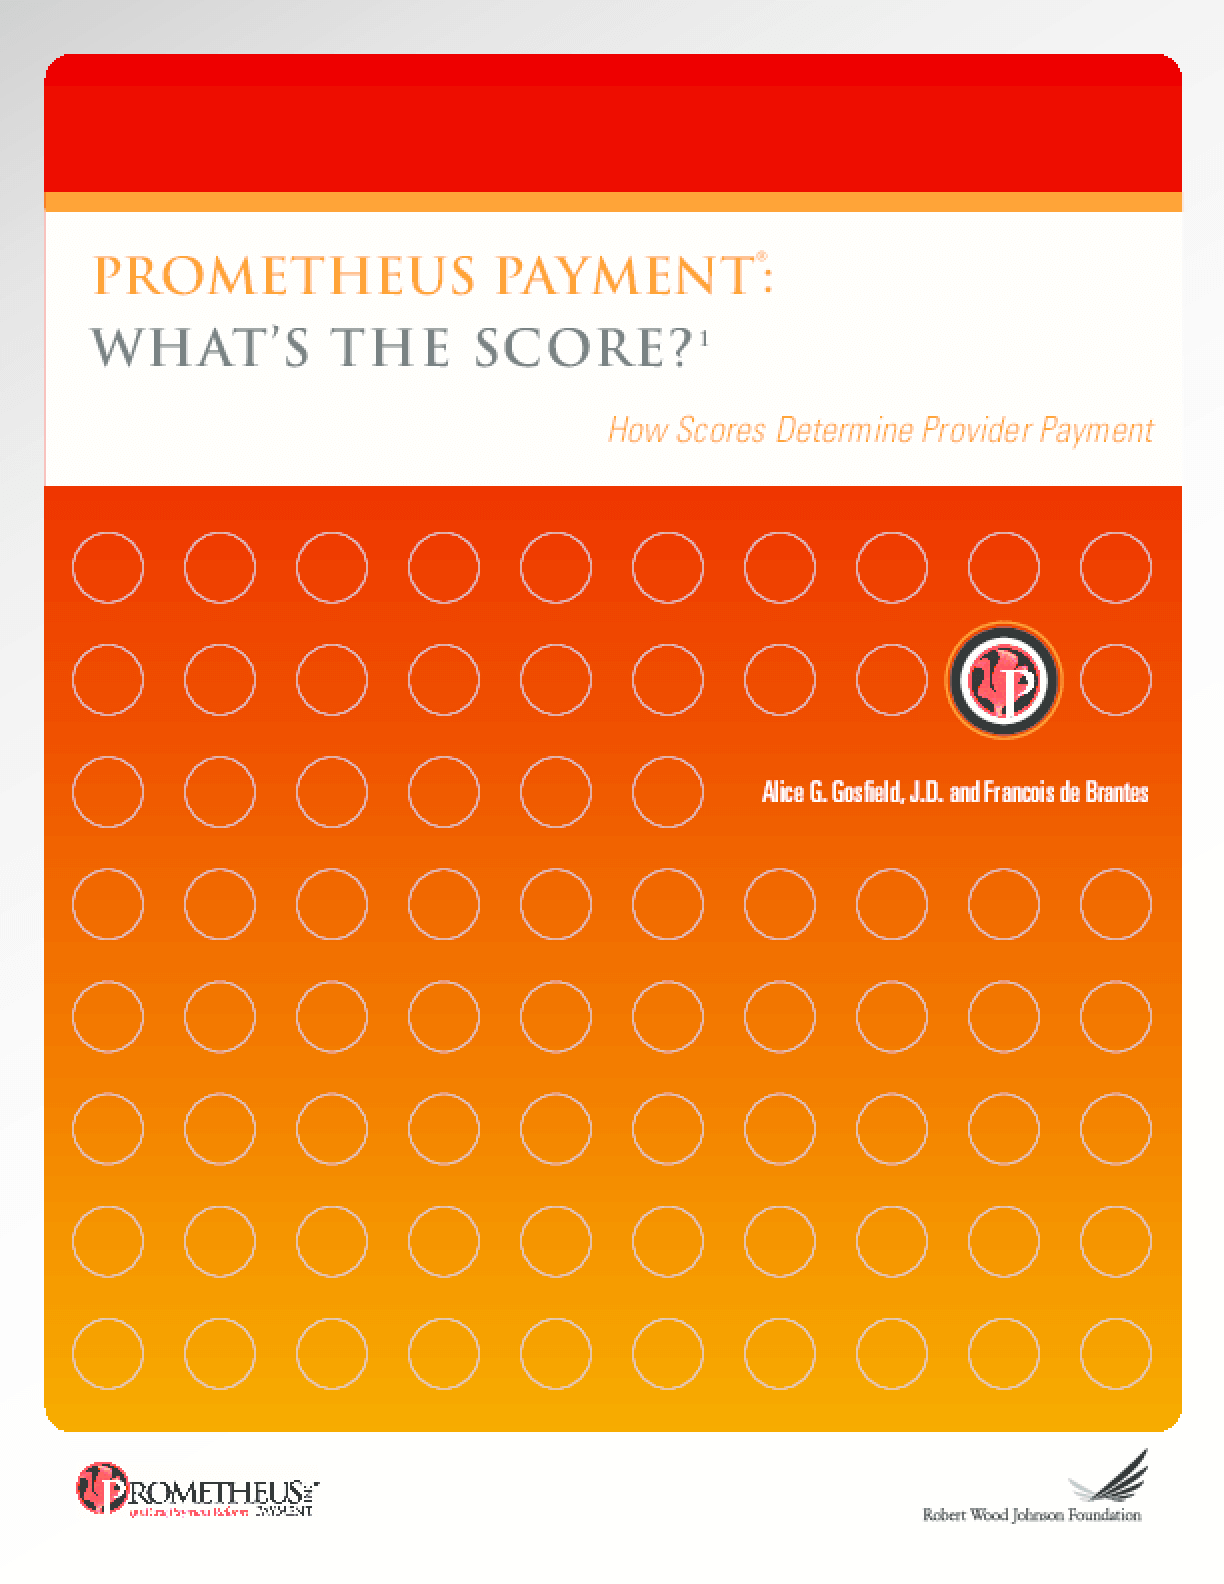 PROMETHEUS Payment: What's the Score?